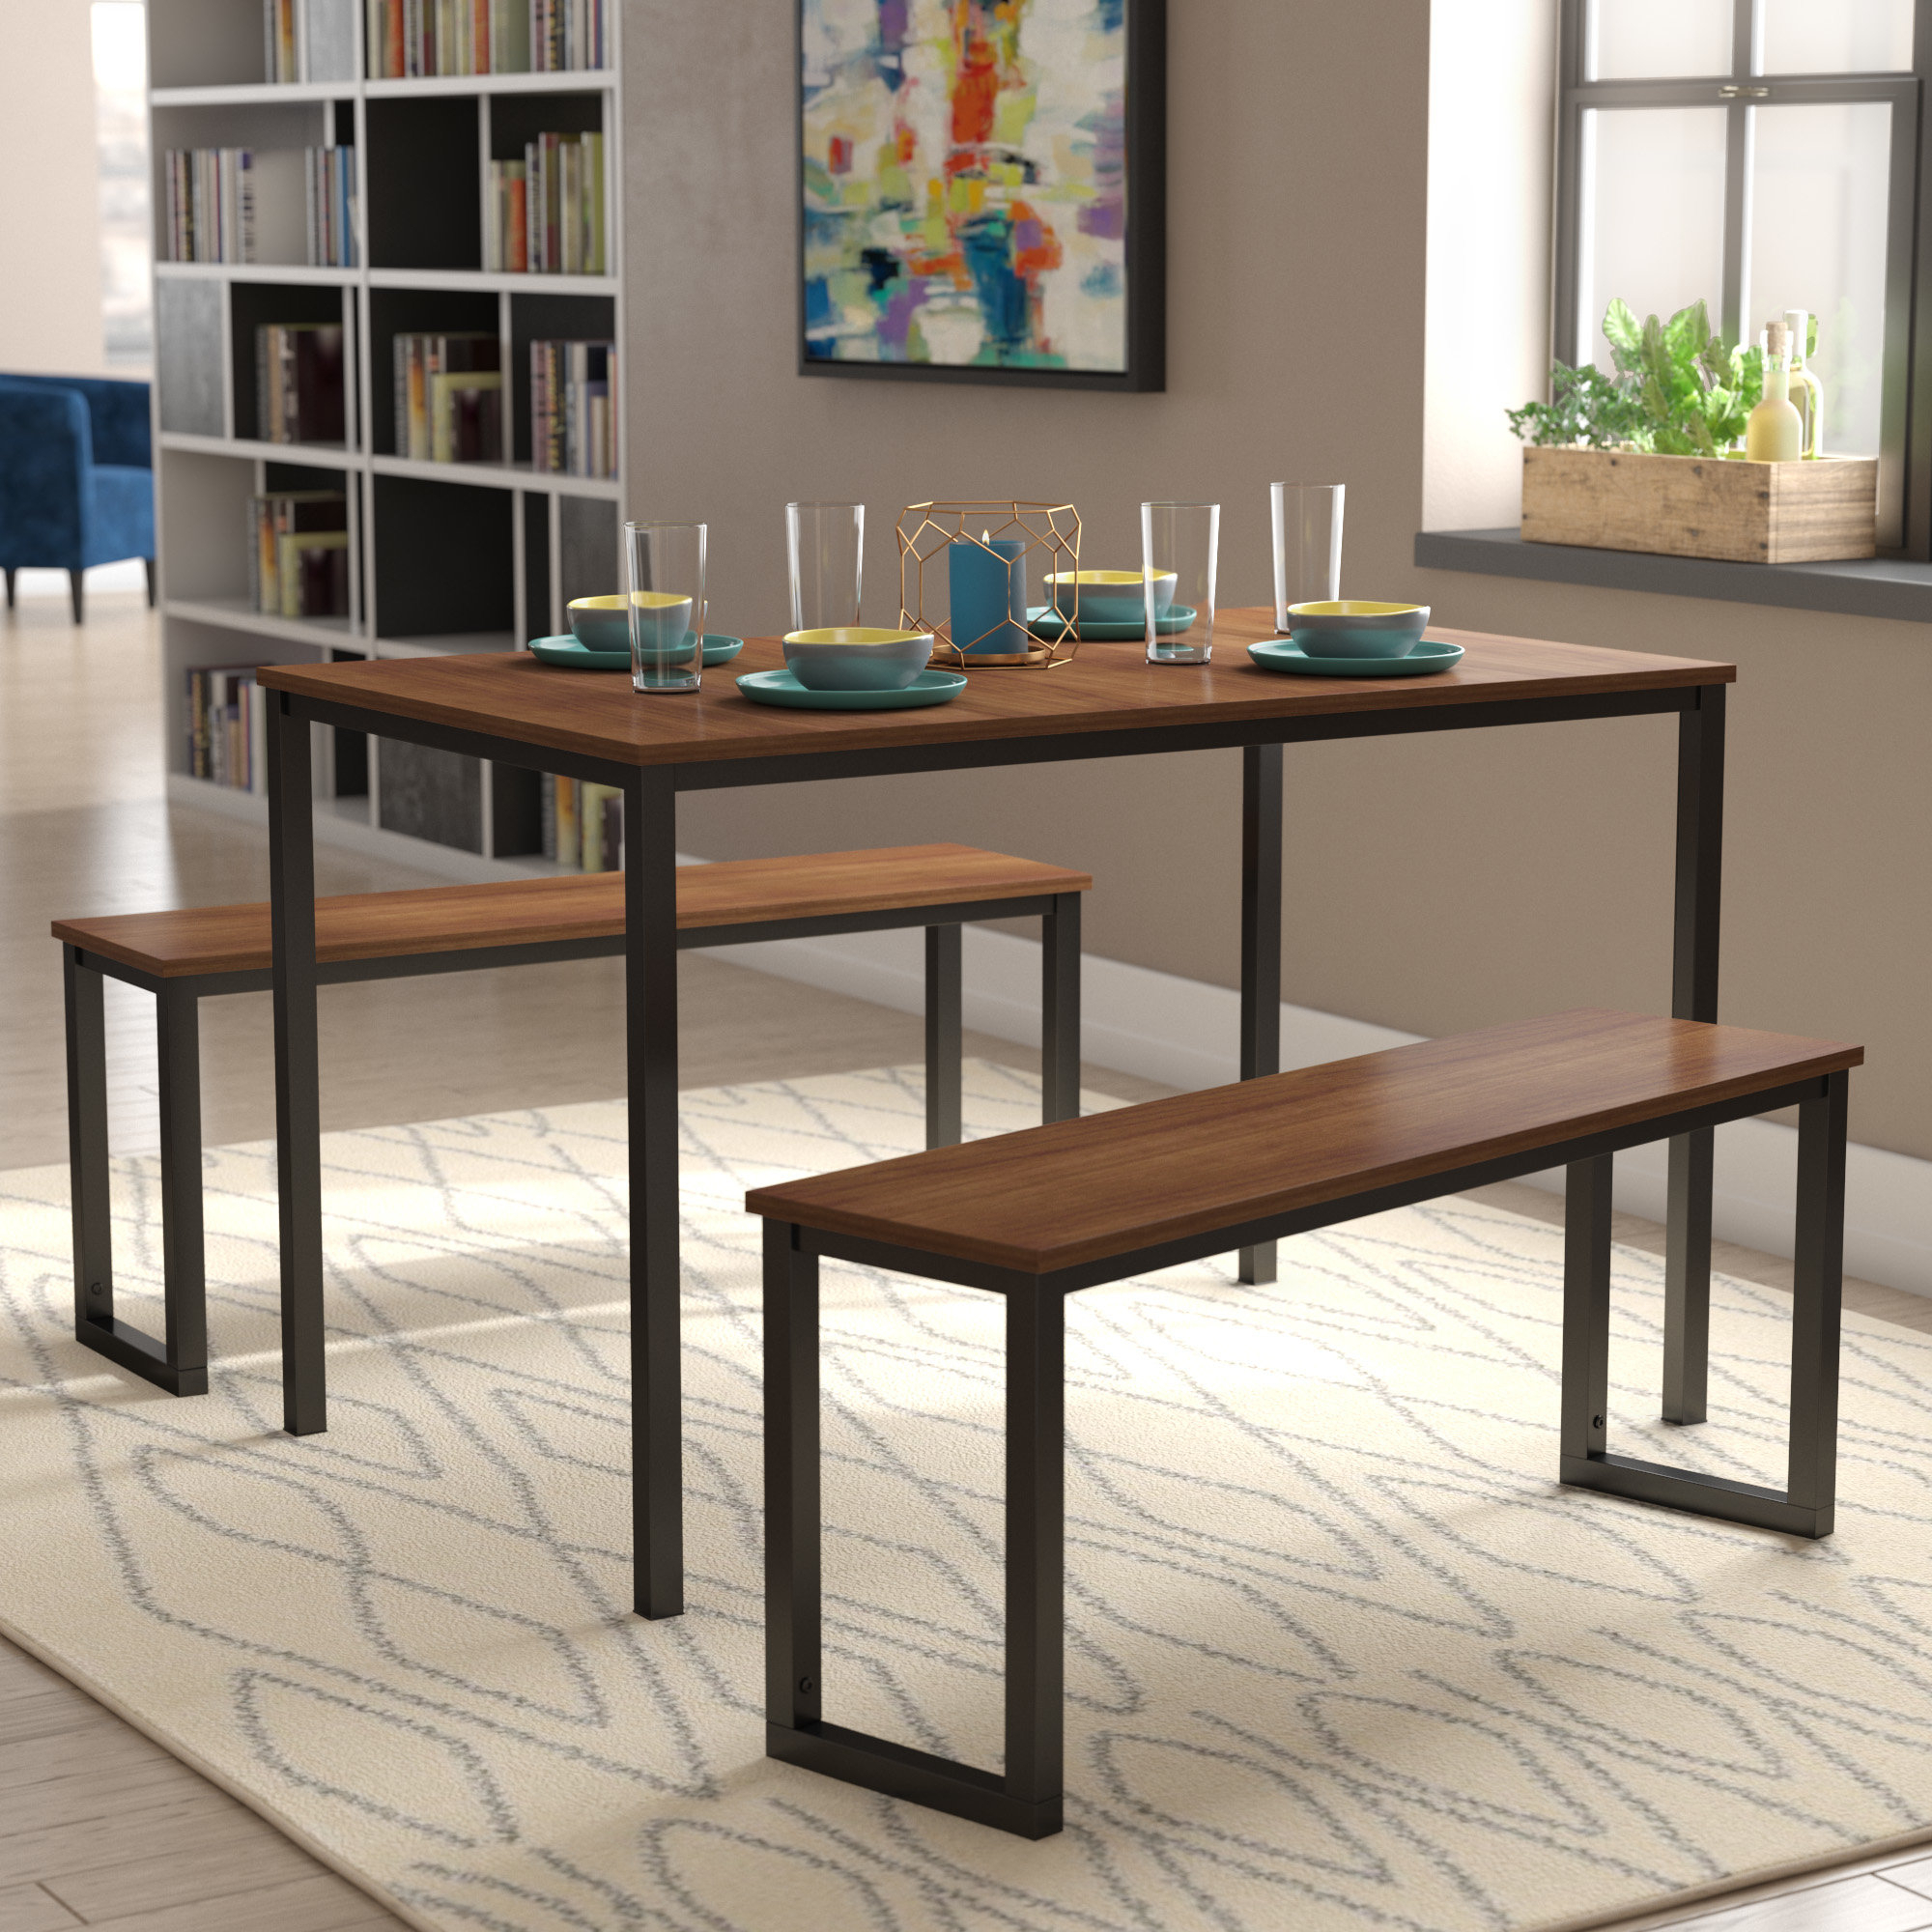 Frida 3 Piece Dining Table Set Regarding 2017 Frida 3 Piece Dining Table Sets (Photo 2 of 20)